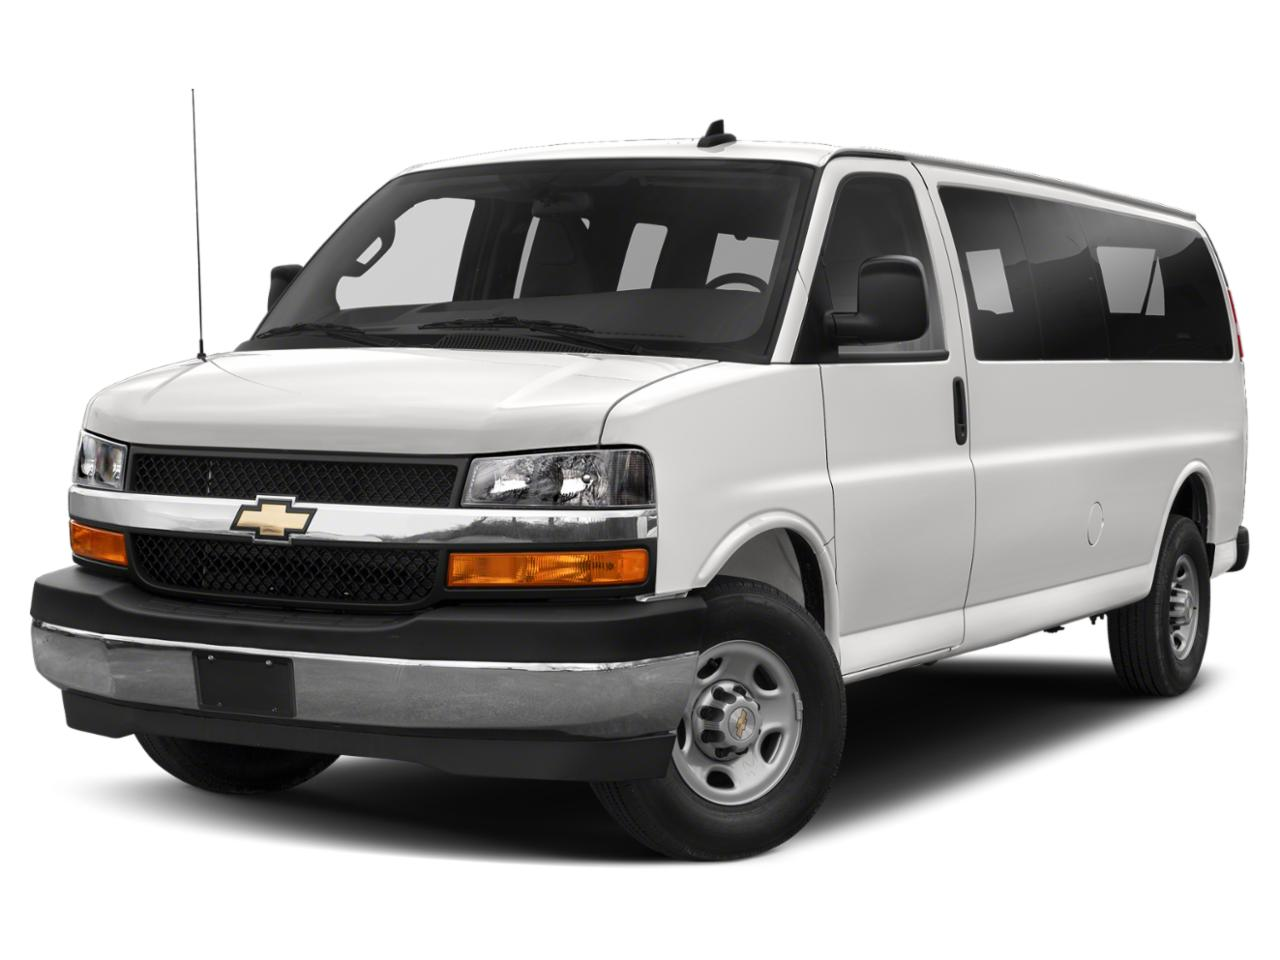 2021 Chevrolet Express Passenger Vehicle Photo in Neenah, WI 54956